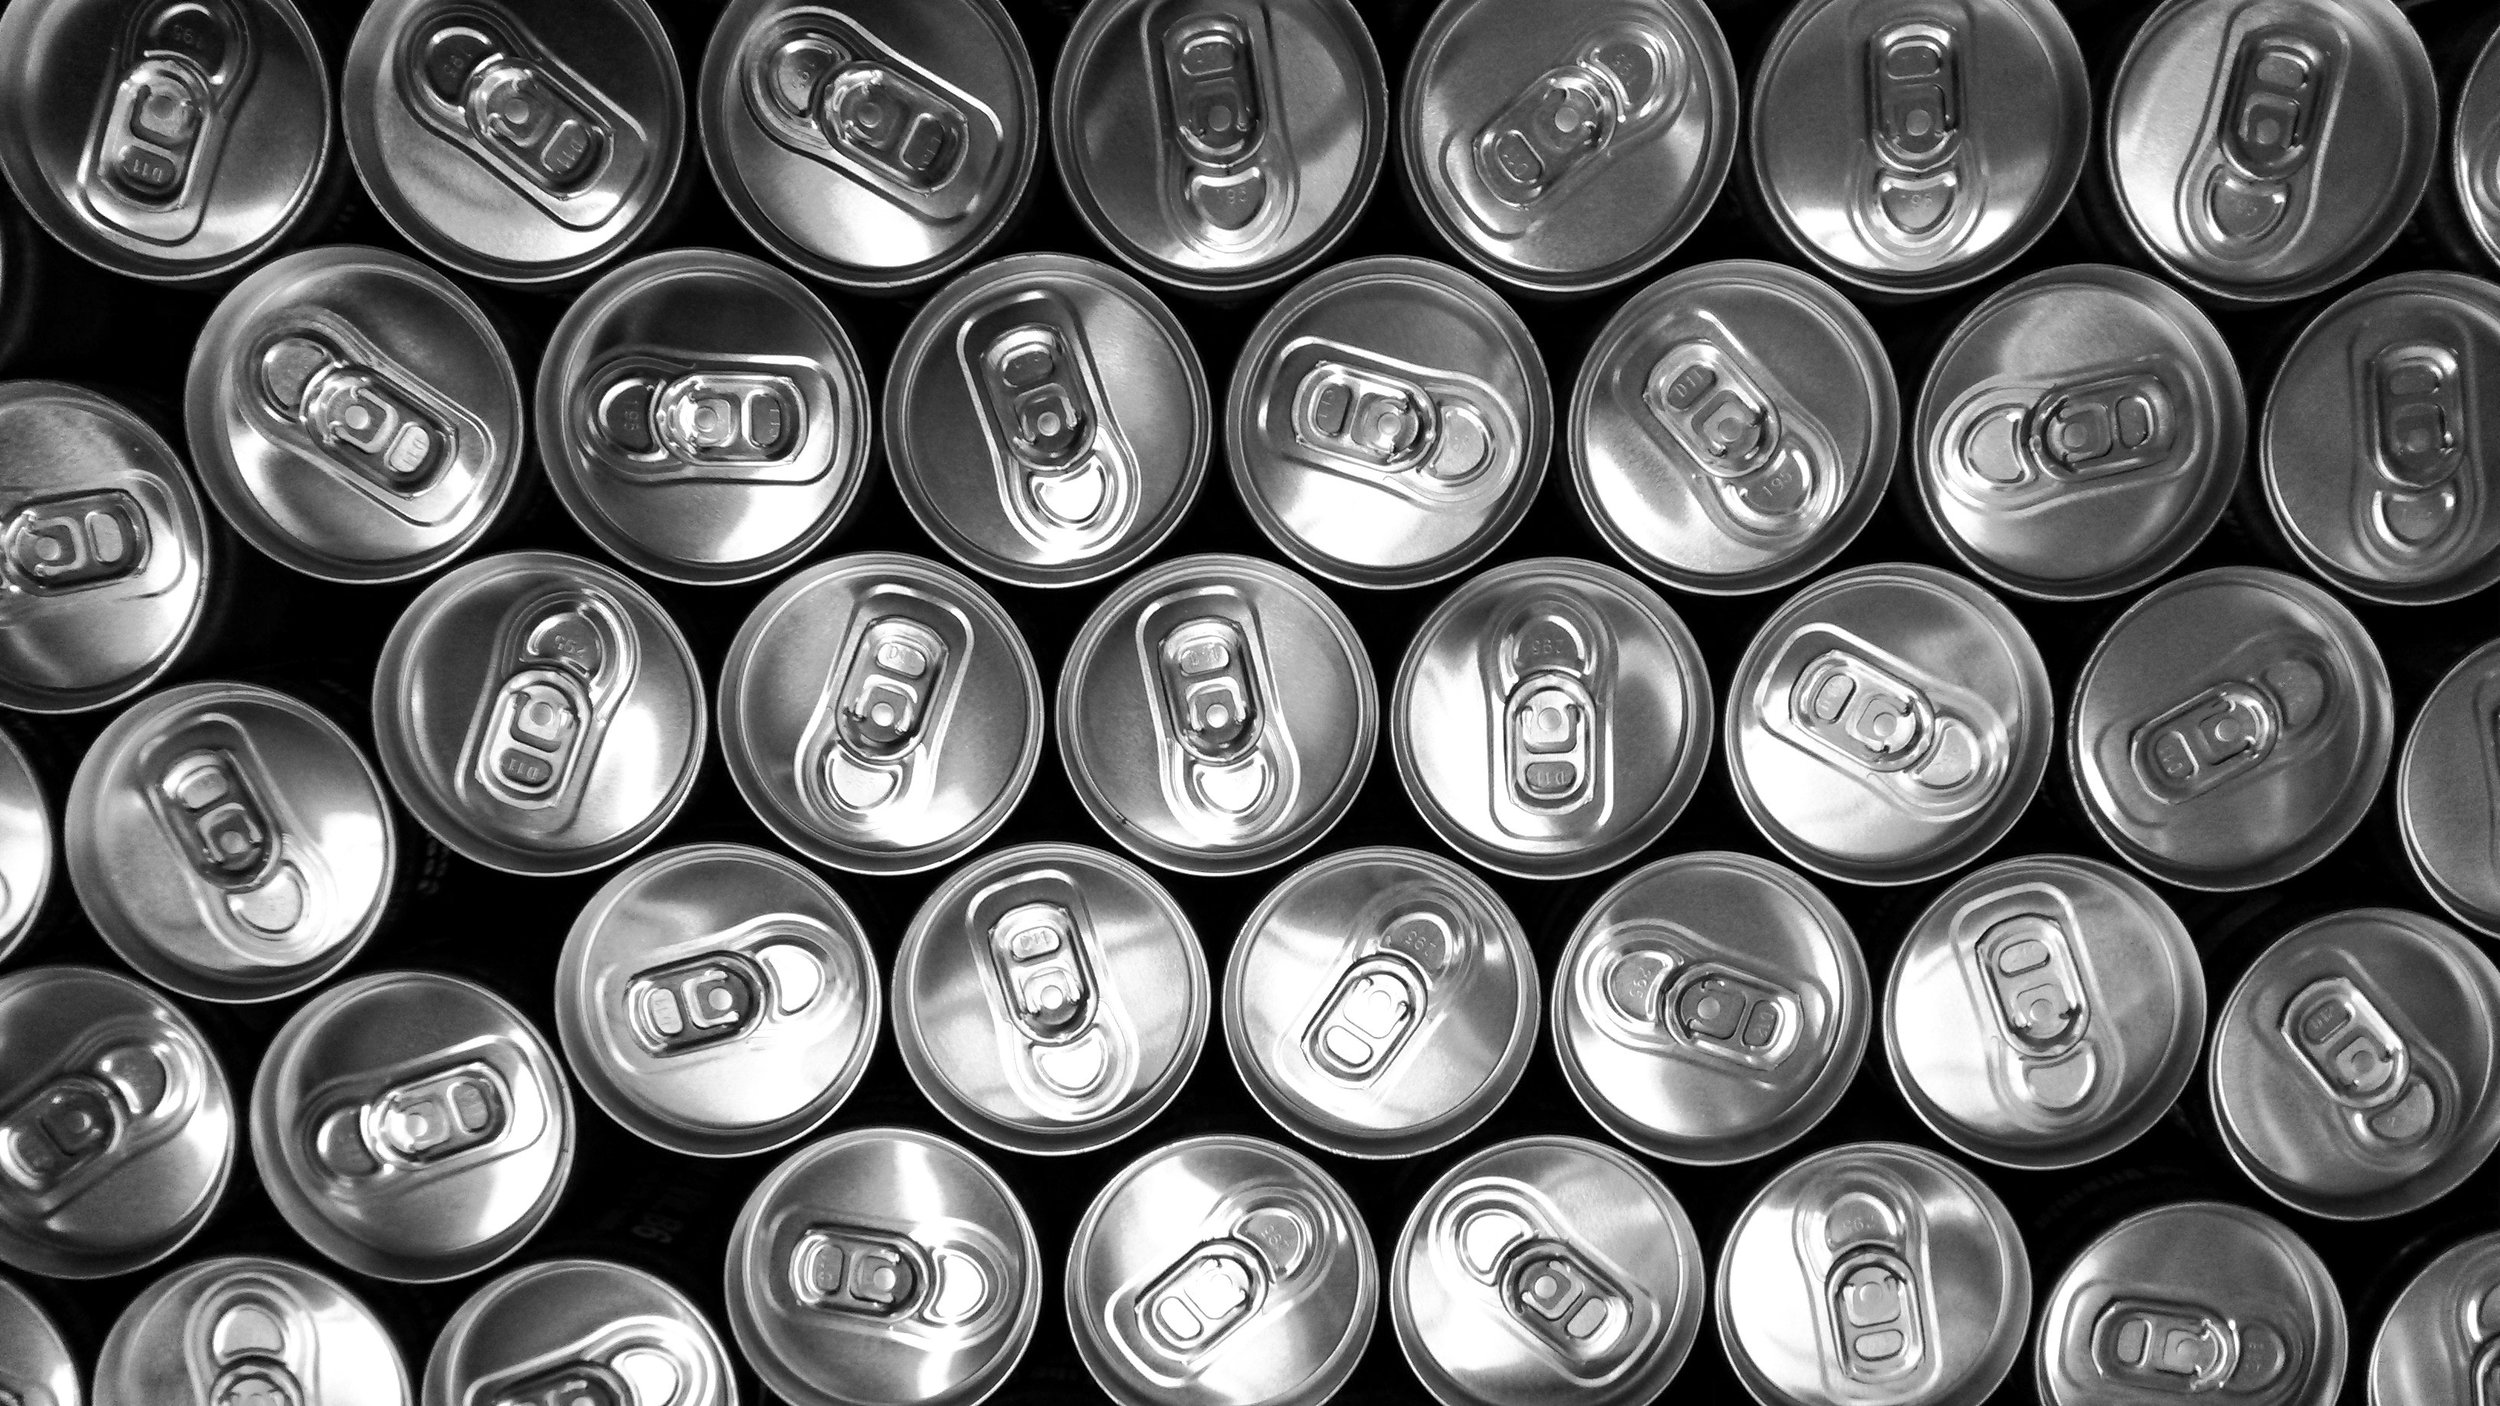 black-and-white-cans-doses-19954.jpg